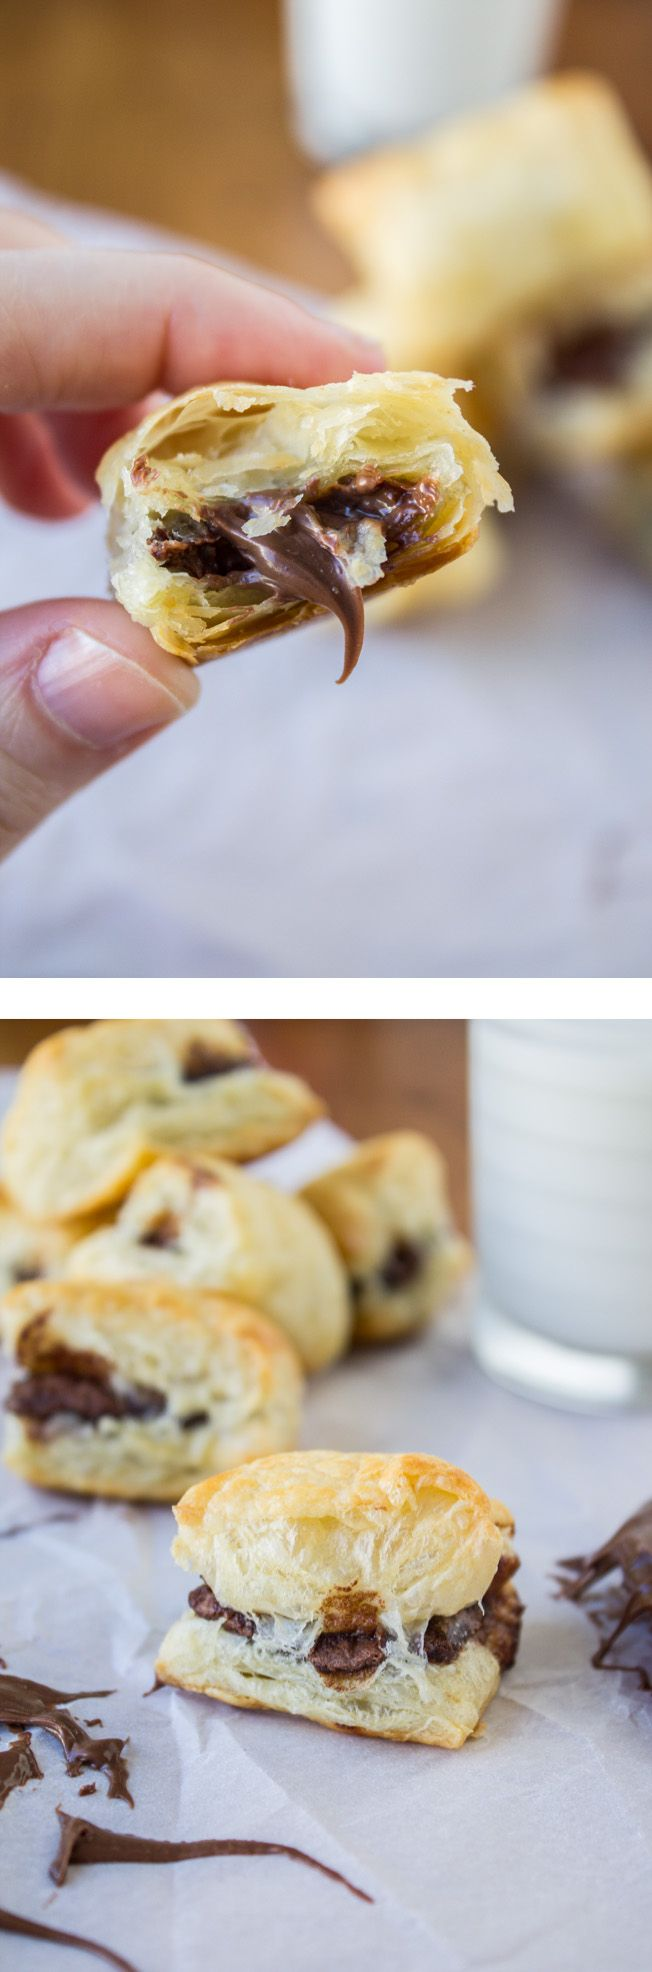 2 Ingredient Nutella Puffs from The Food Charlatan // These could be yours in 15 minutes...